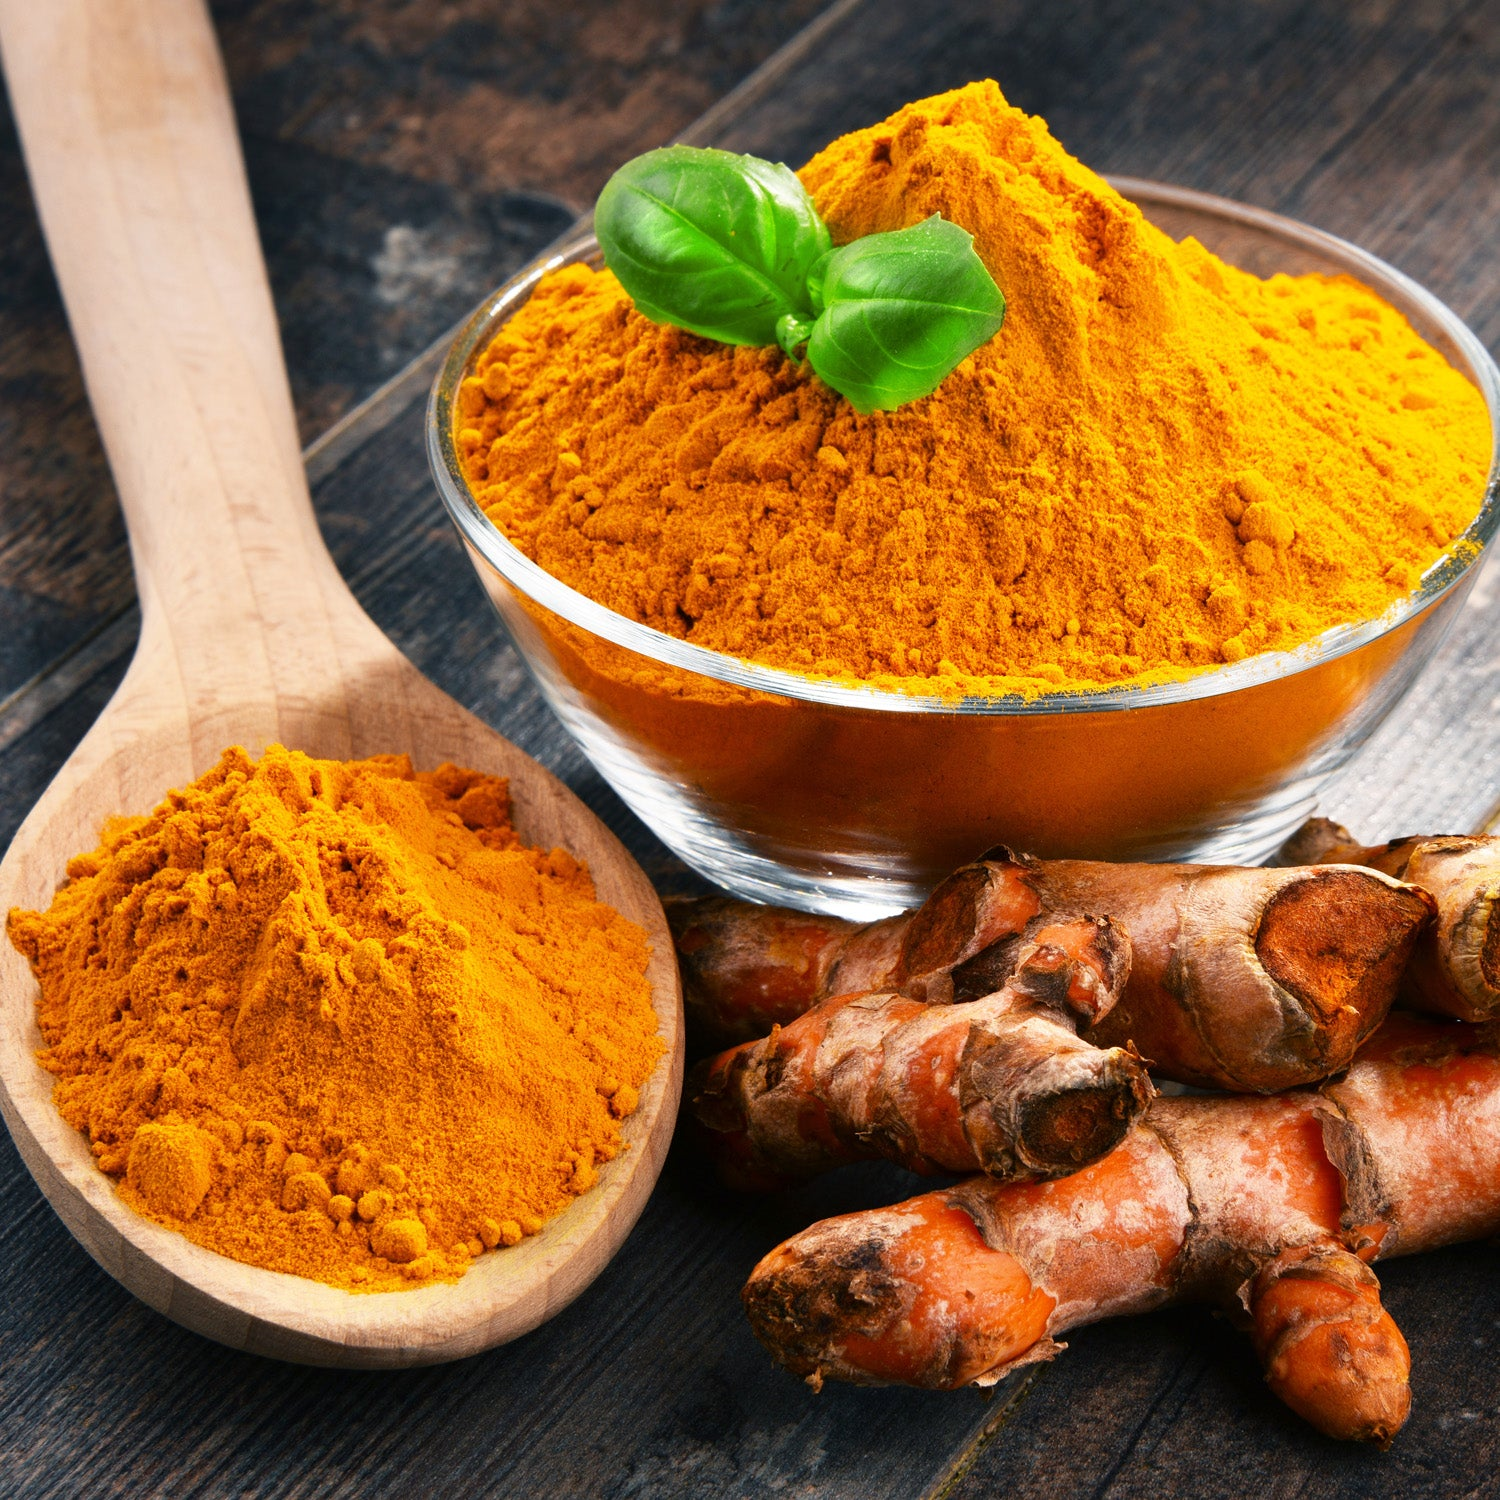 5 Health Benefits Of Turmeric & Curcumin